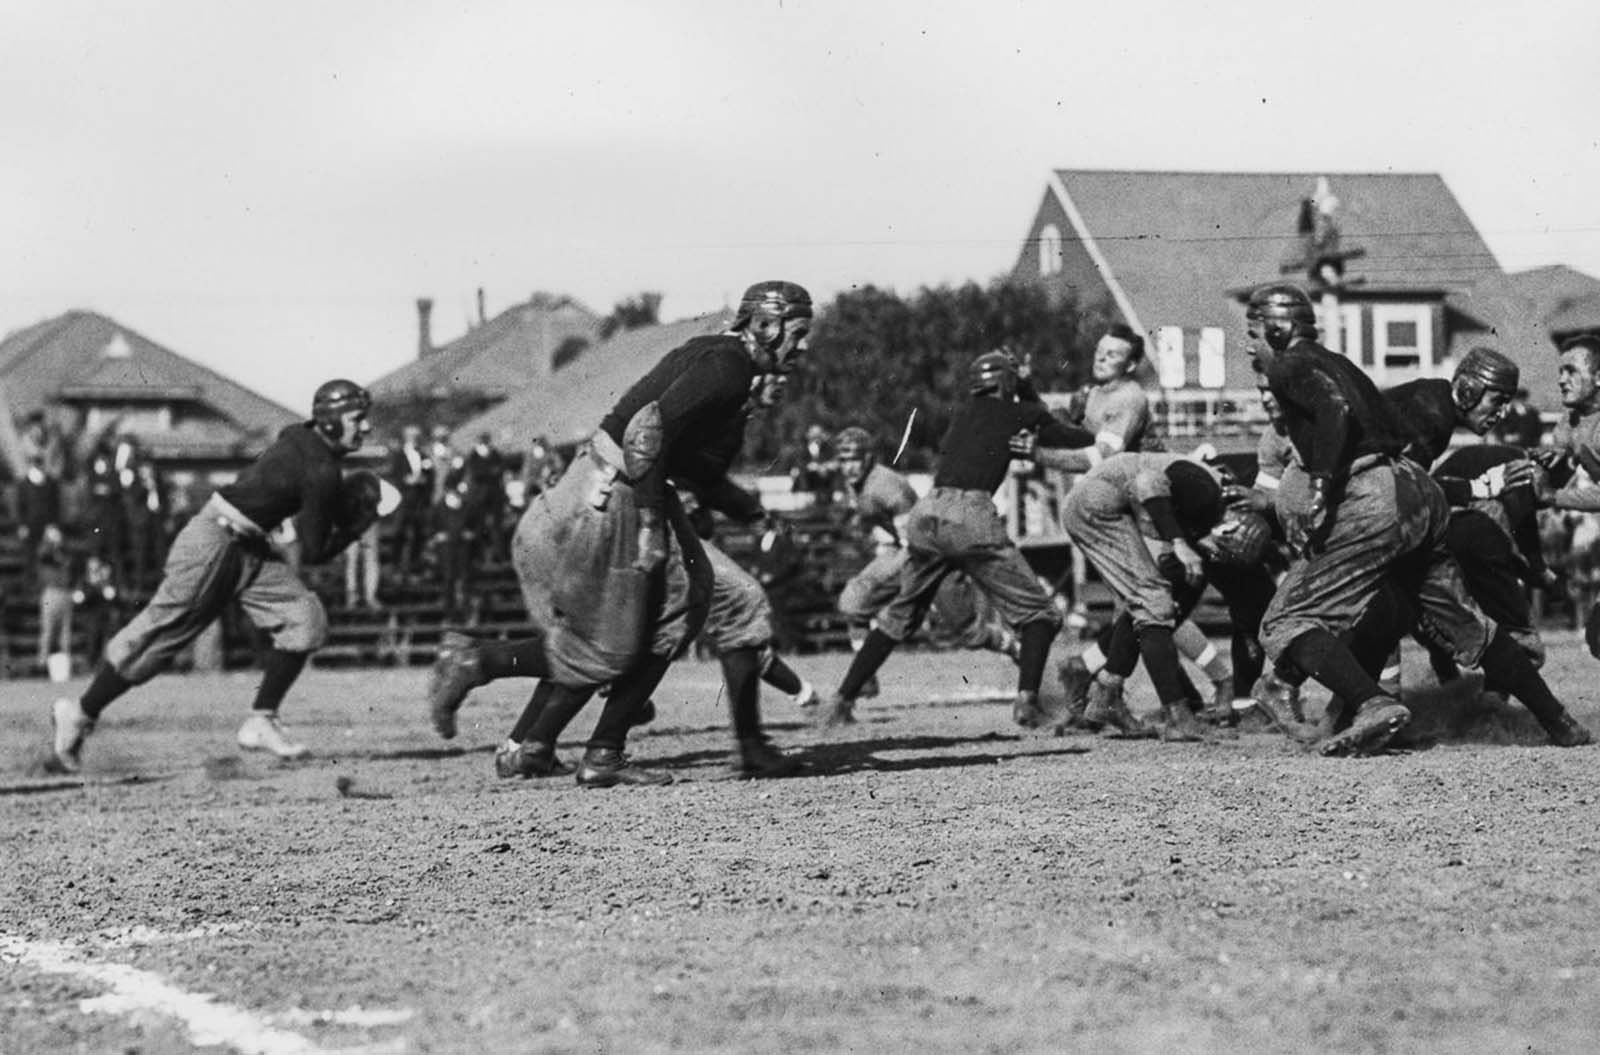 University of Southern California Trojans football team run a play against the Los Angeles Athletic Club at the Los Angeles Memorial Coliseum. 1915.